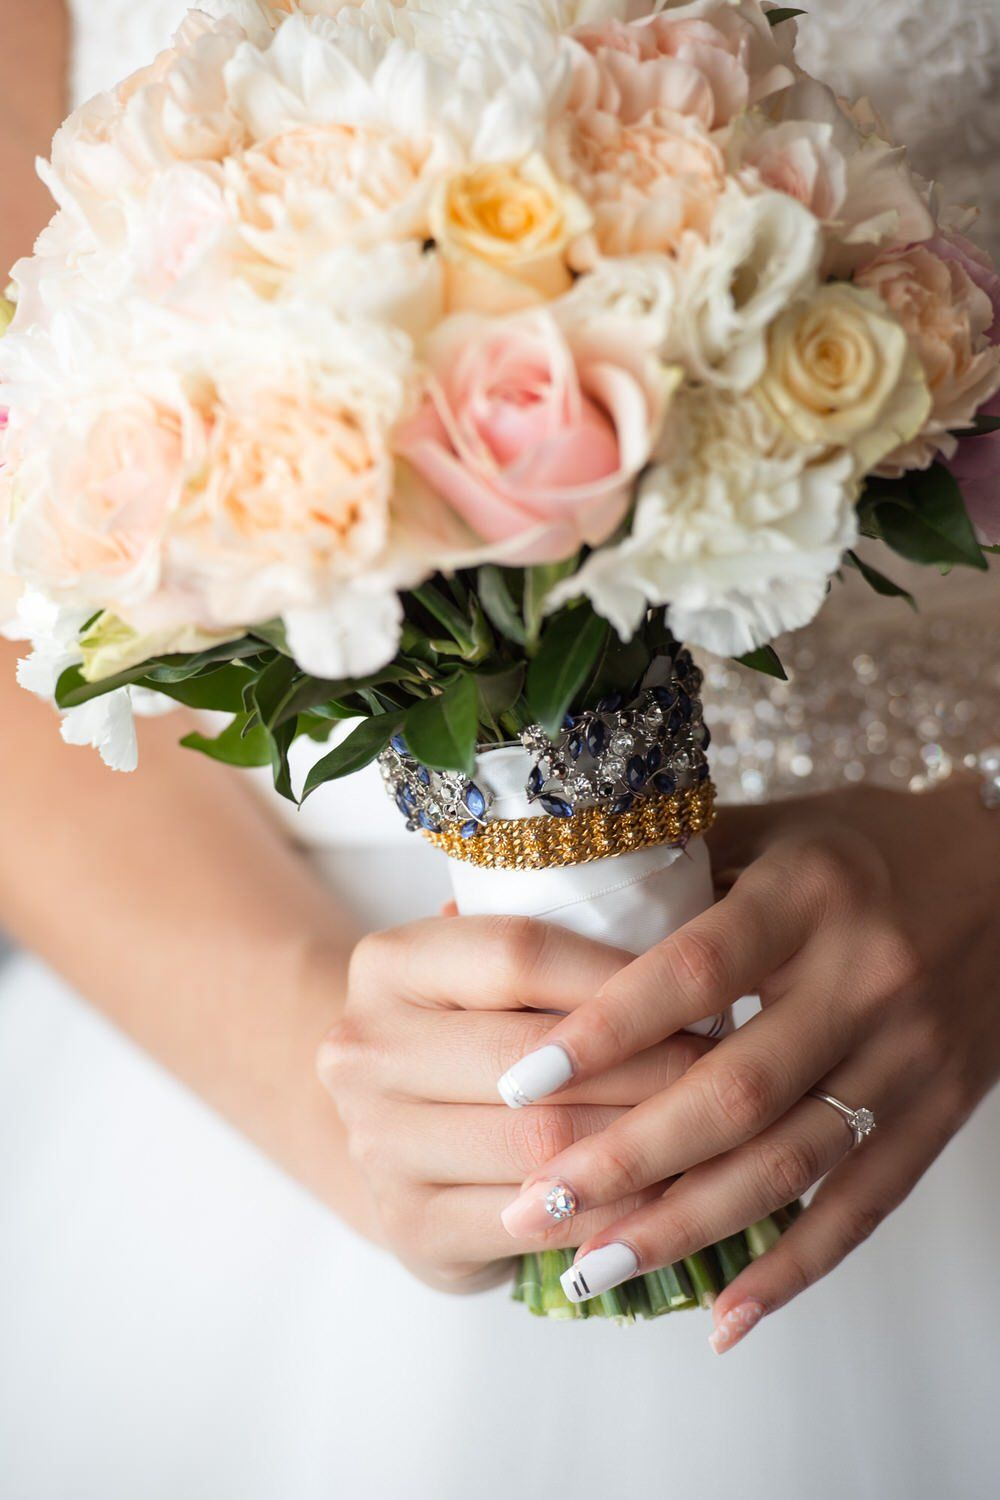 Engagement ring wedding flowers bridal brides bouquet